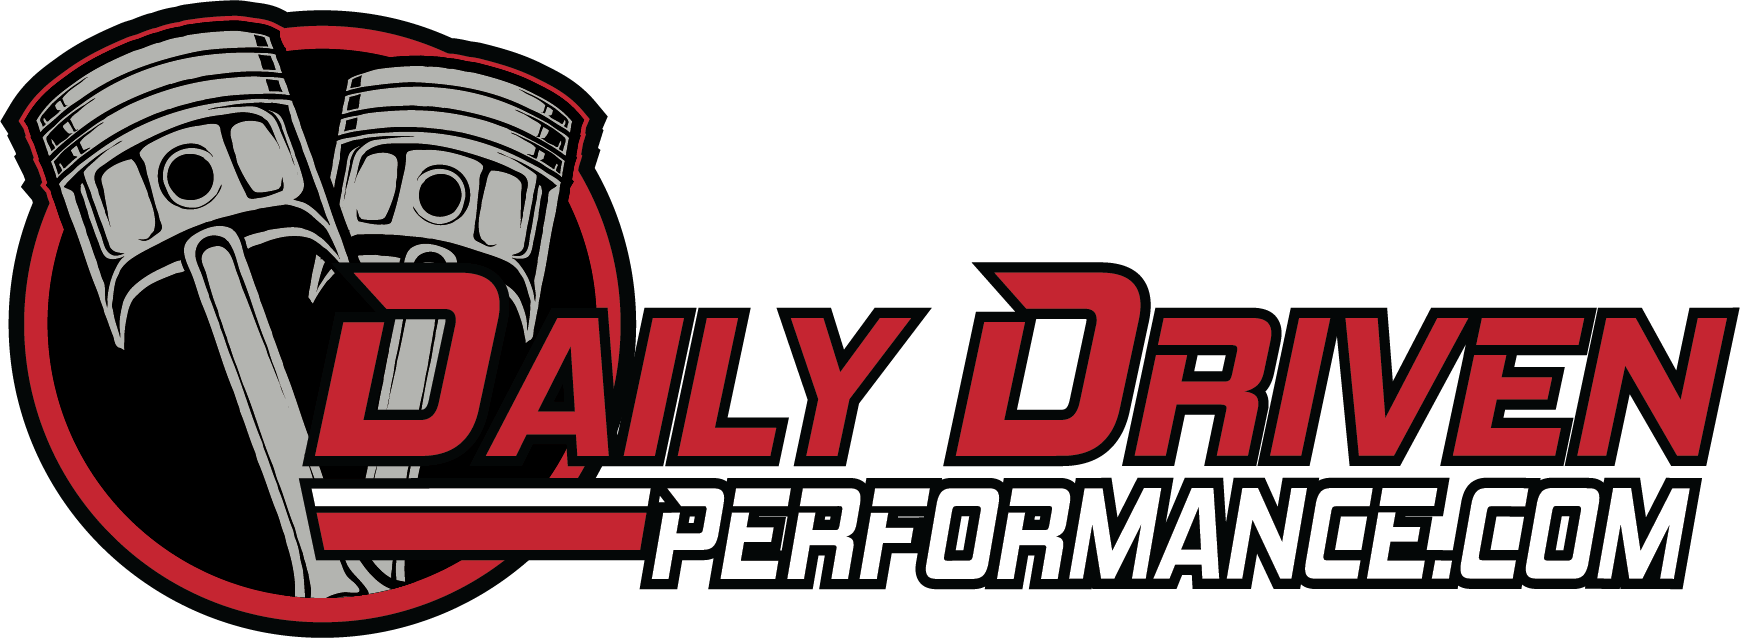 Daily Driven Performanc